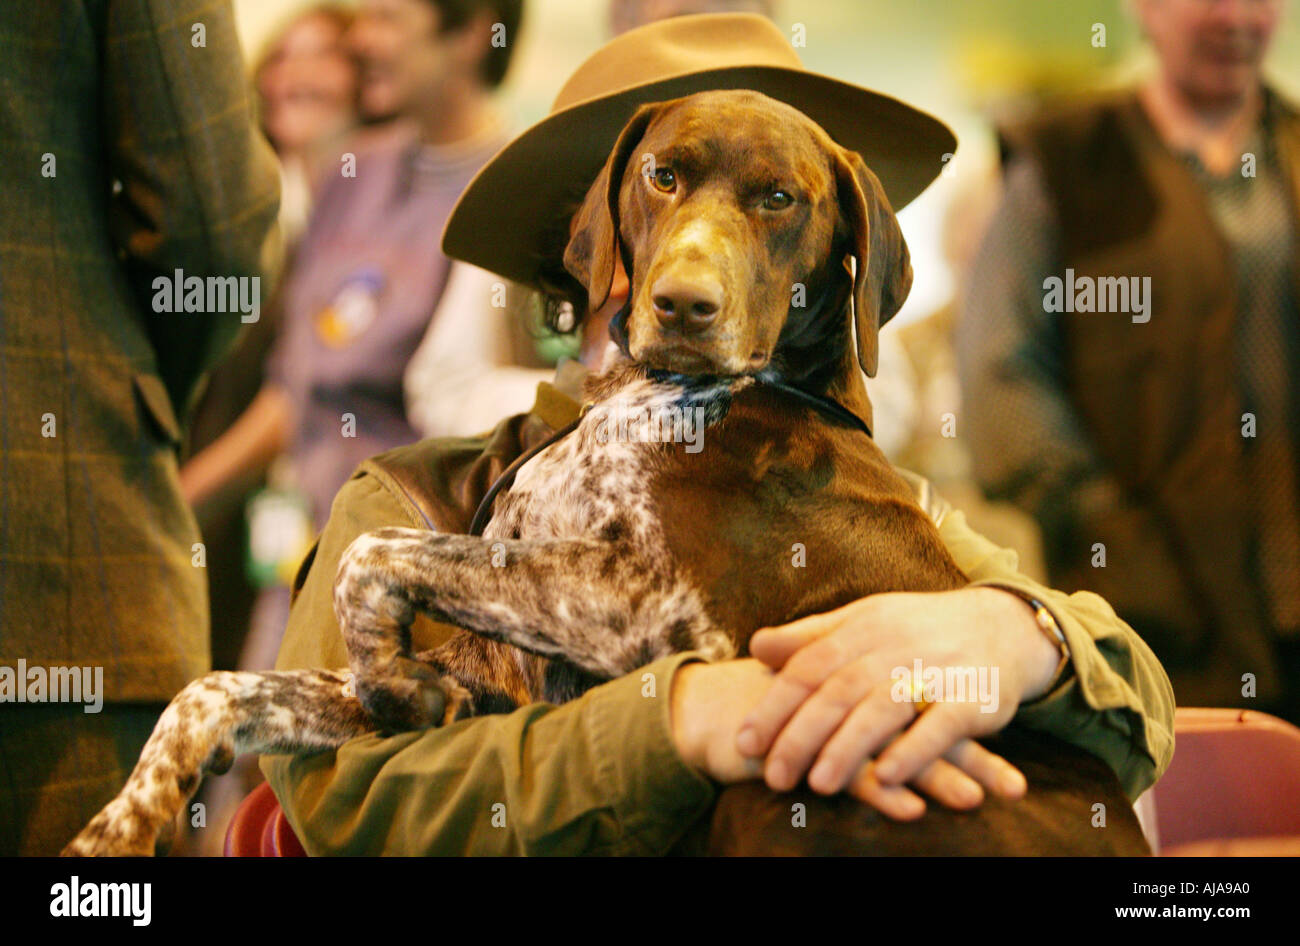 A dog sitting on its owners lap at Crufts at the National Exhibition Centre Birmingham UK - Stock Image